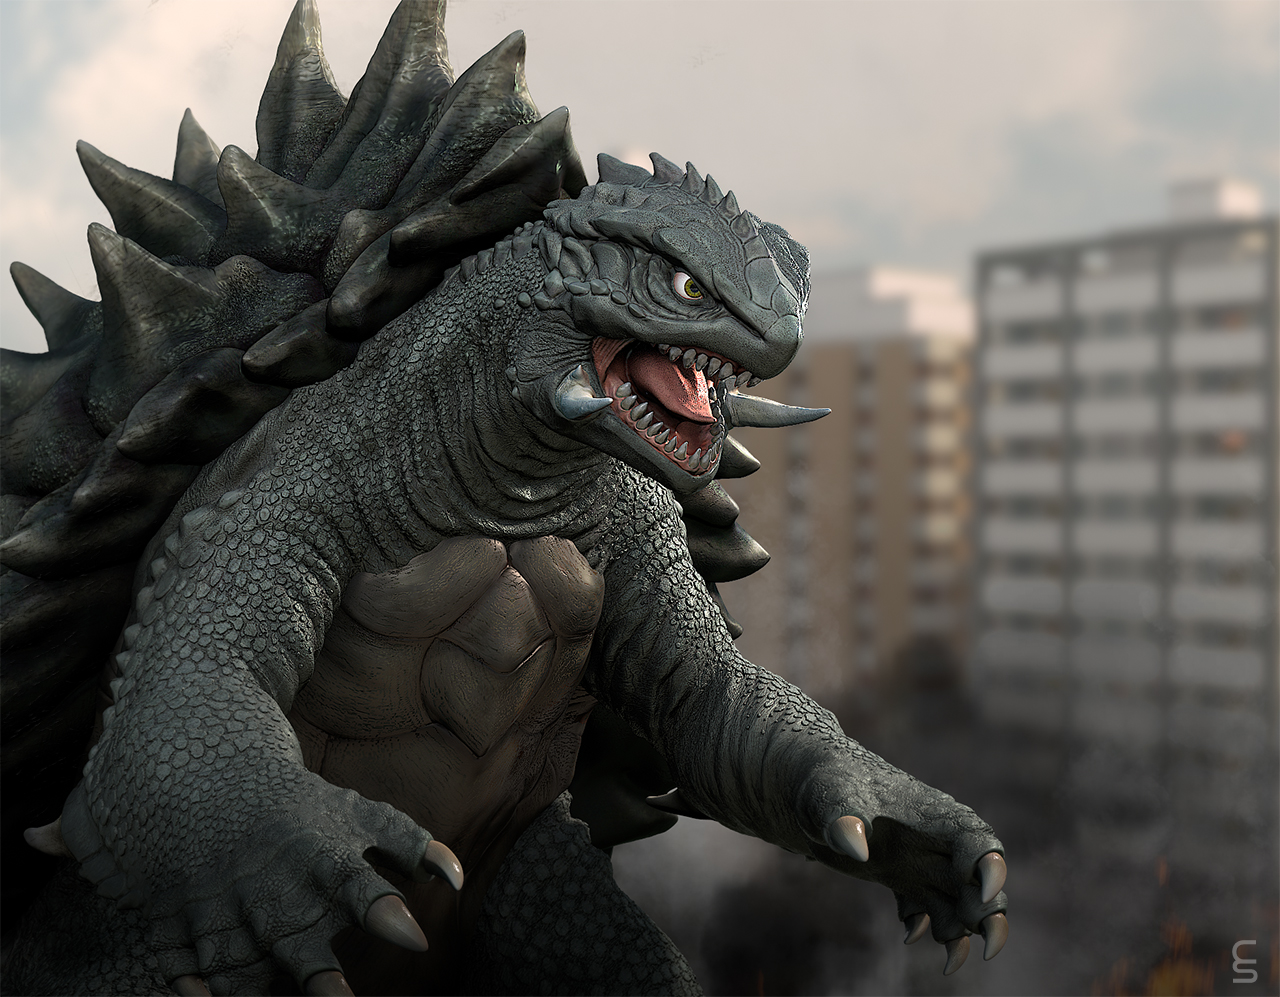 Gamera by Digiwip on DeviantArt